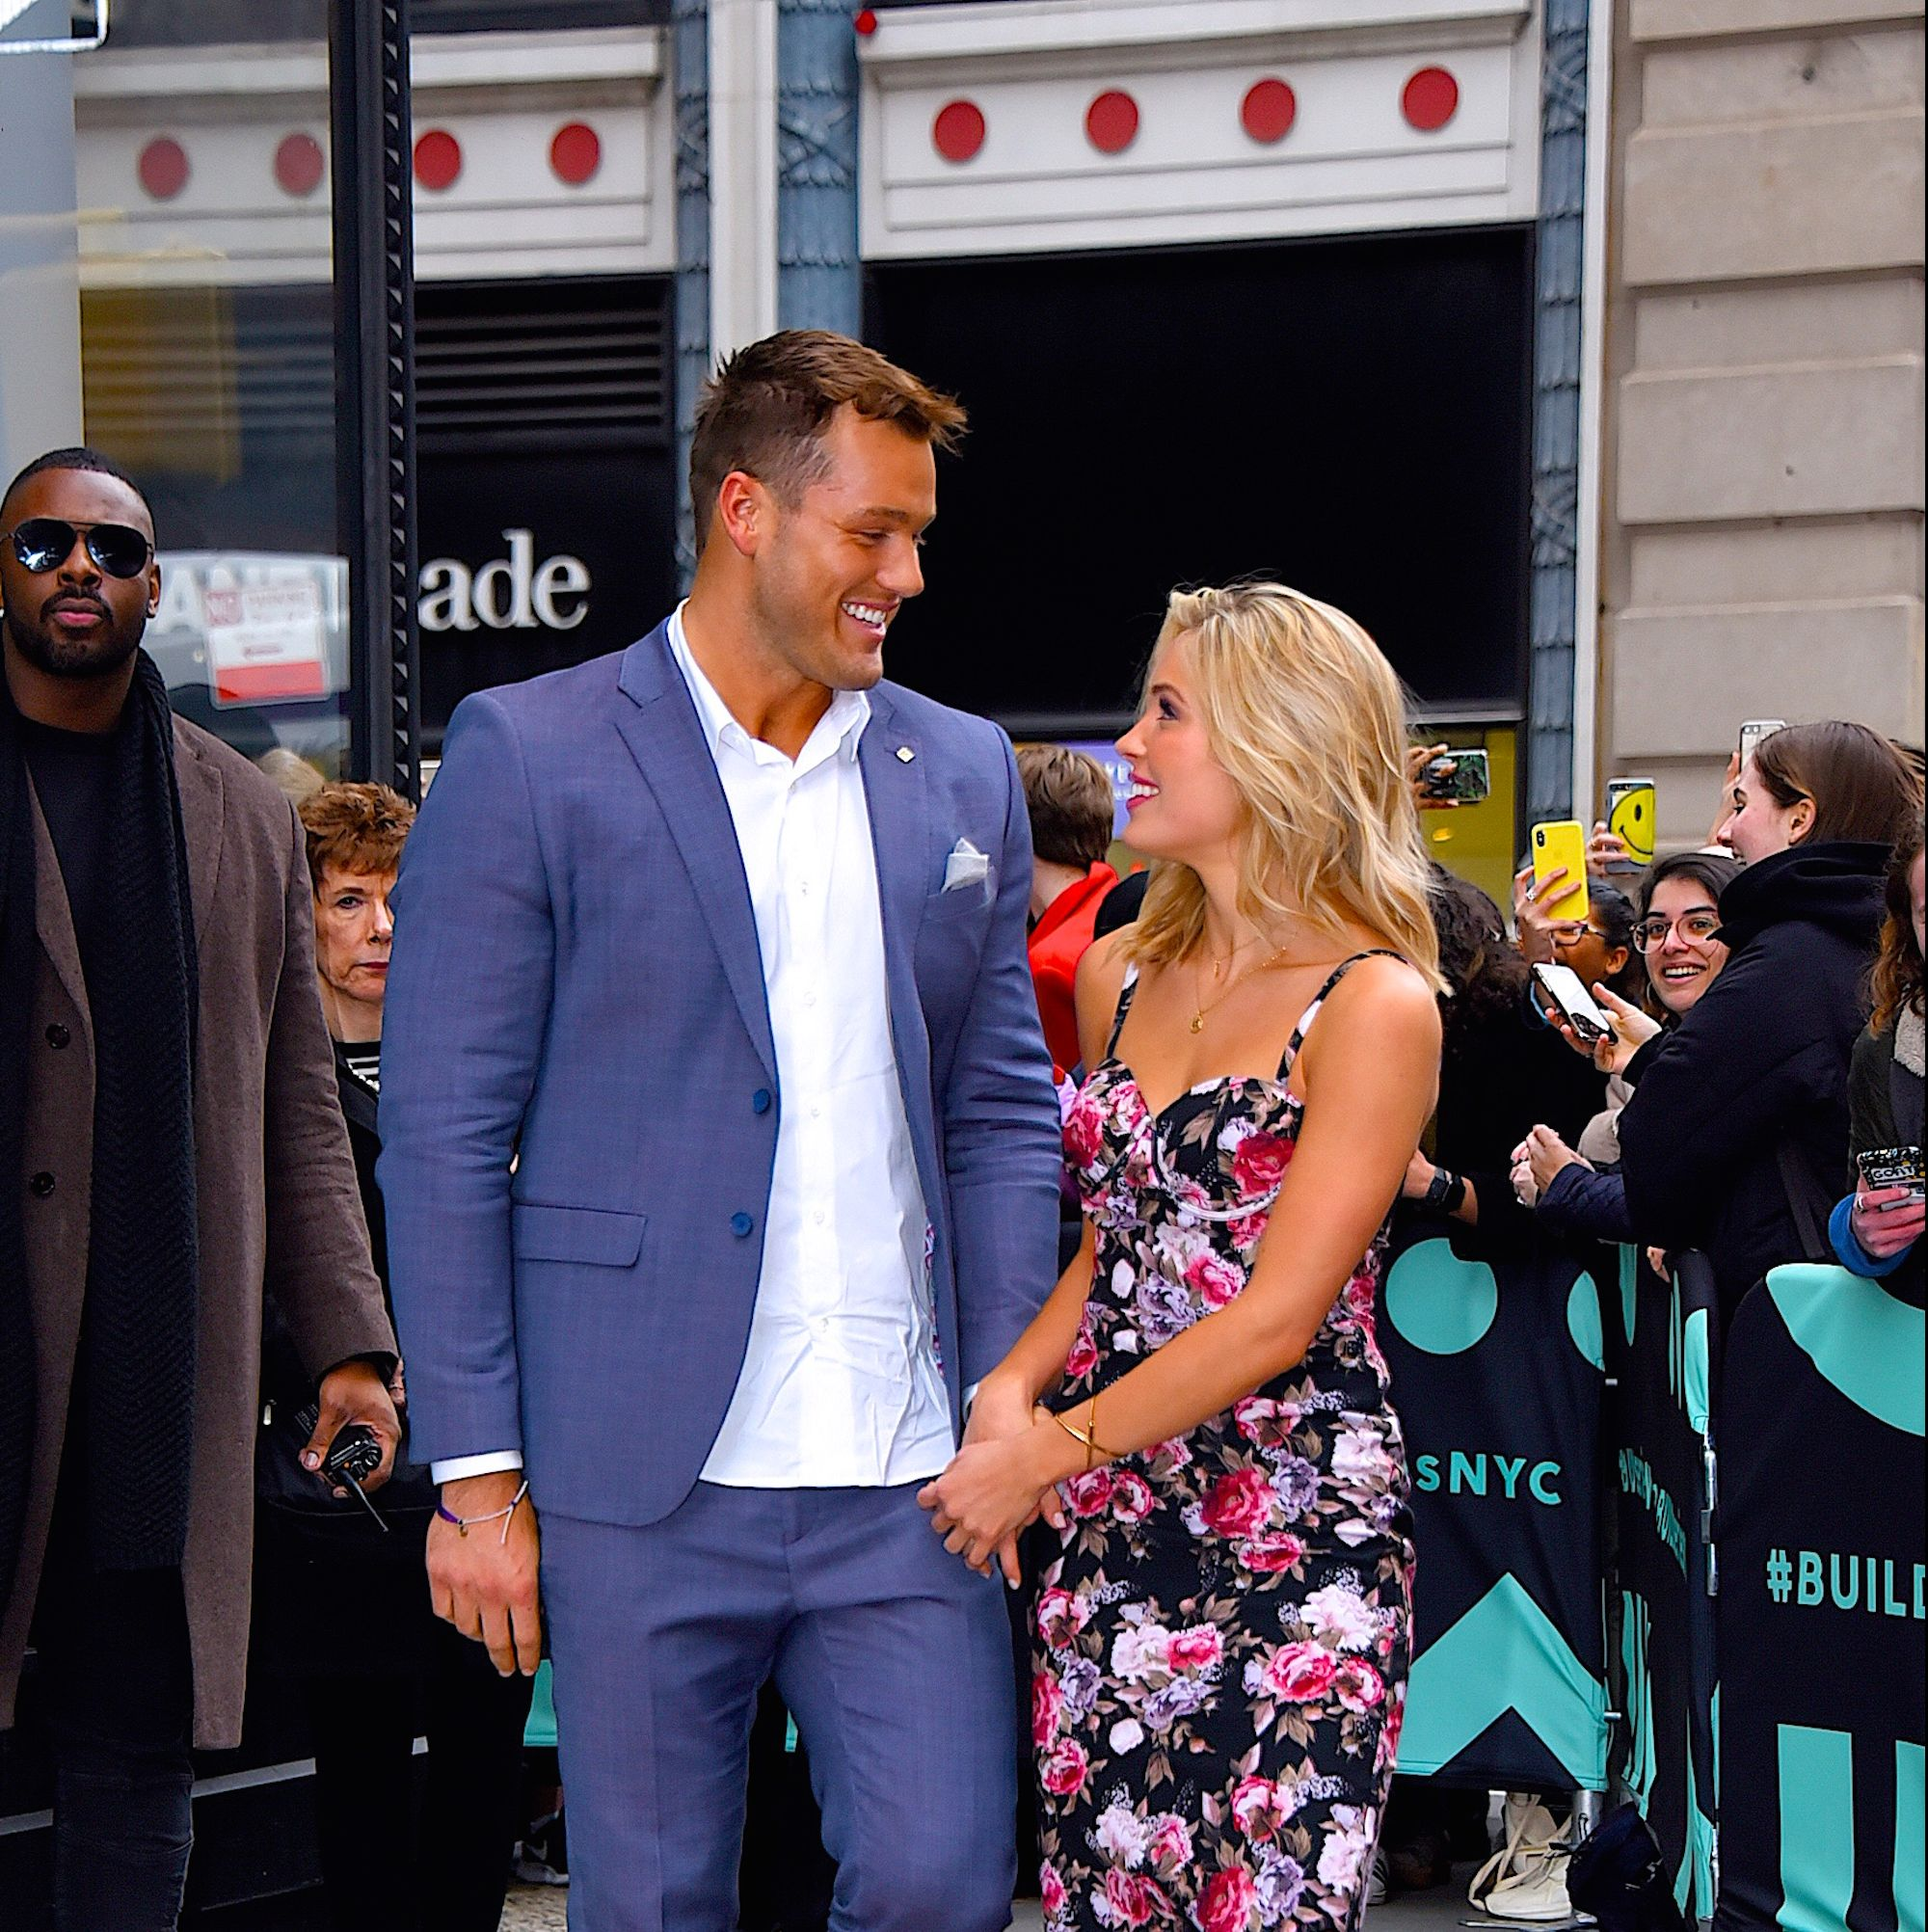 The Bachelor's Colton Underwood And Cassie Randolph Just Got In Their First Fight Over Dumplings